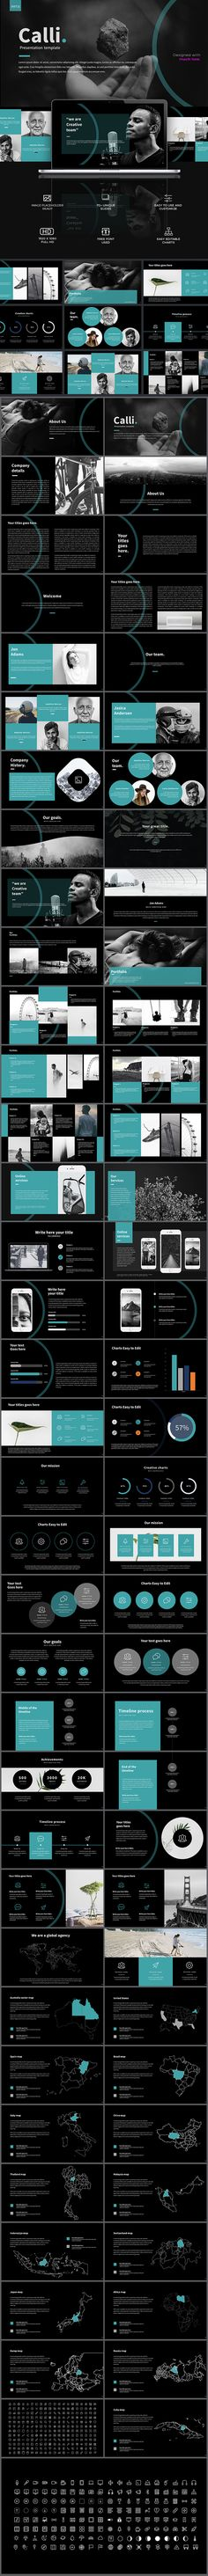 Calli Powerpoint Template - PowerPoint Templates Presentation Templates